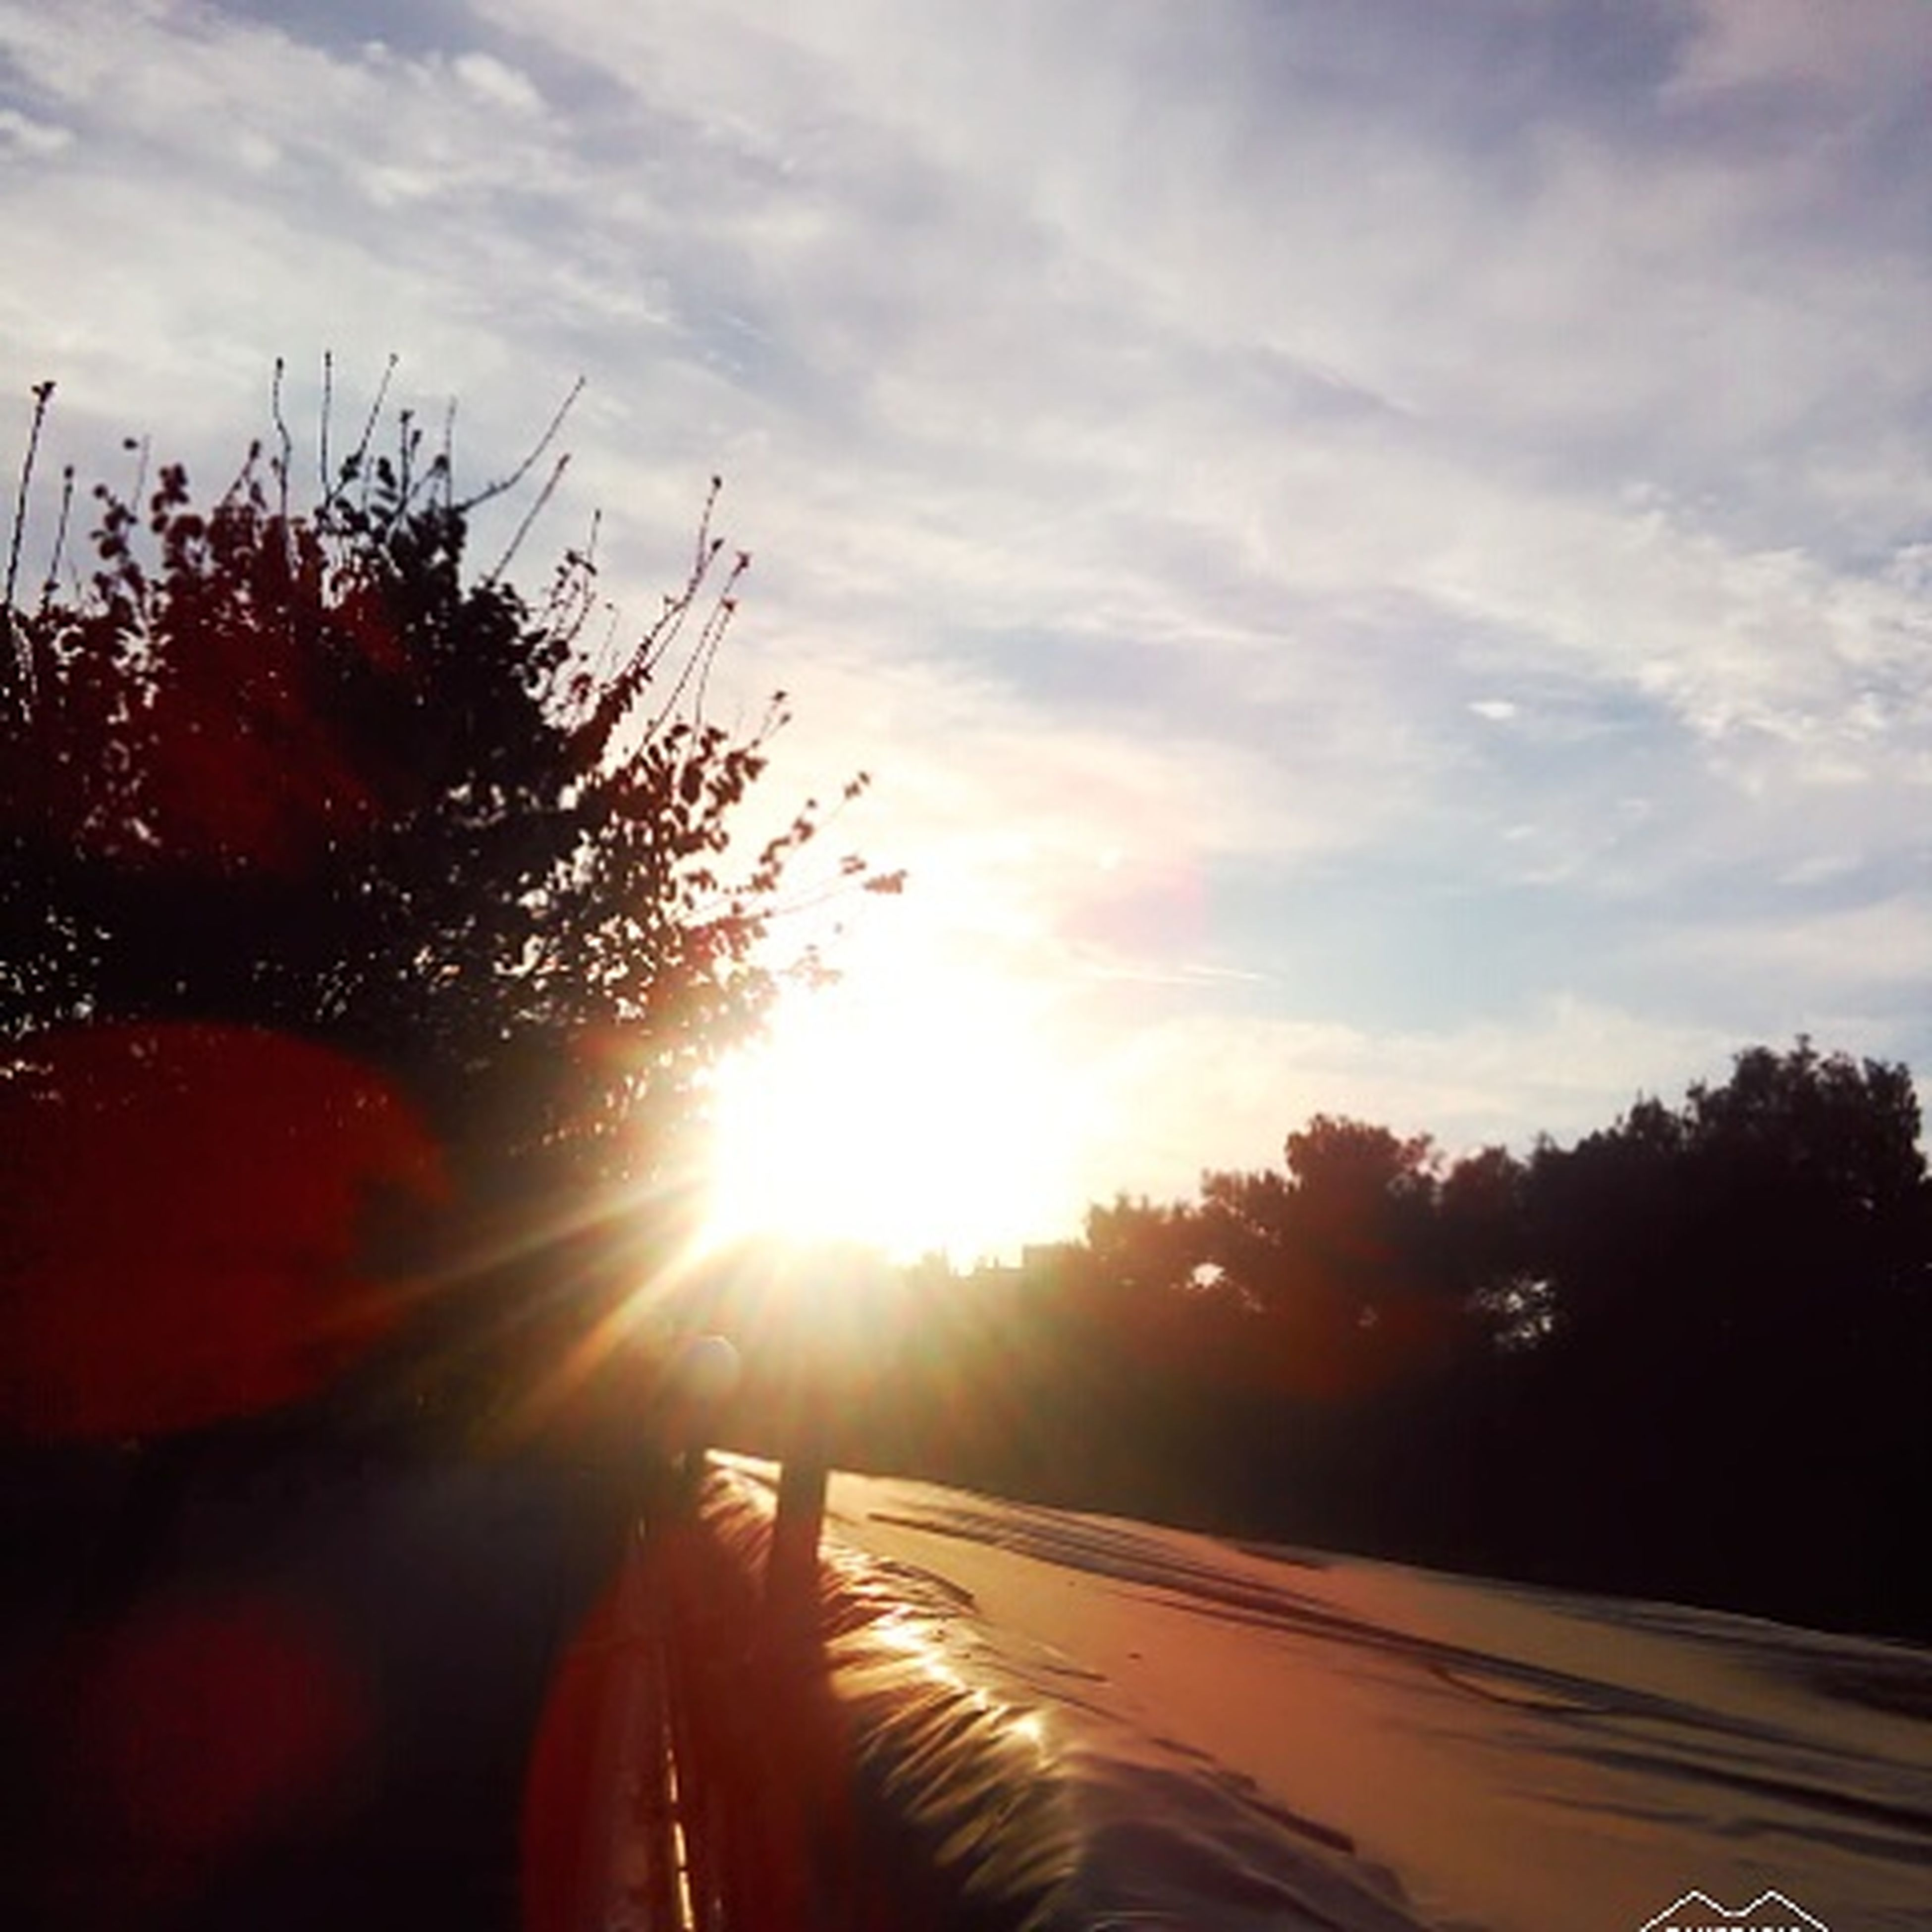 sunlight, sunset, transportation, sky, road, sun, sunbeam, tree, the way forward, nature, outdoors, beauty in nature, no people, day